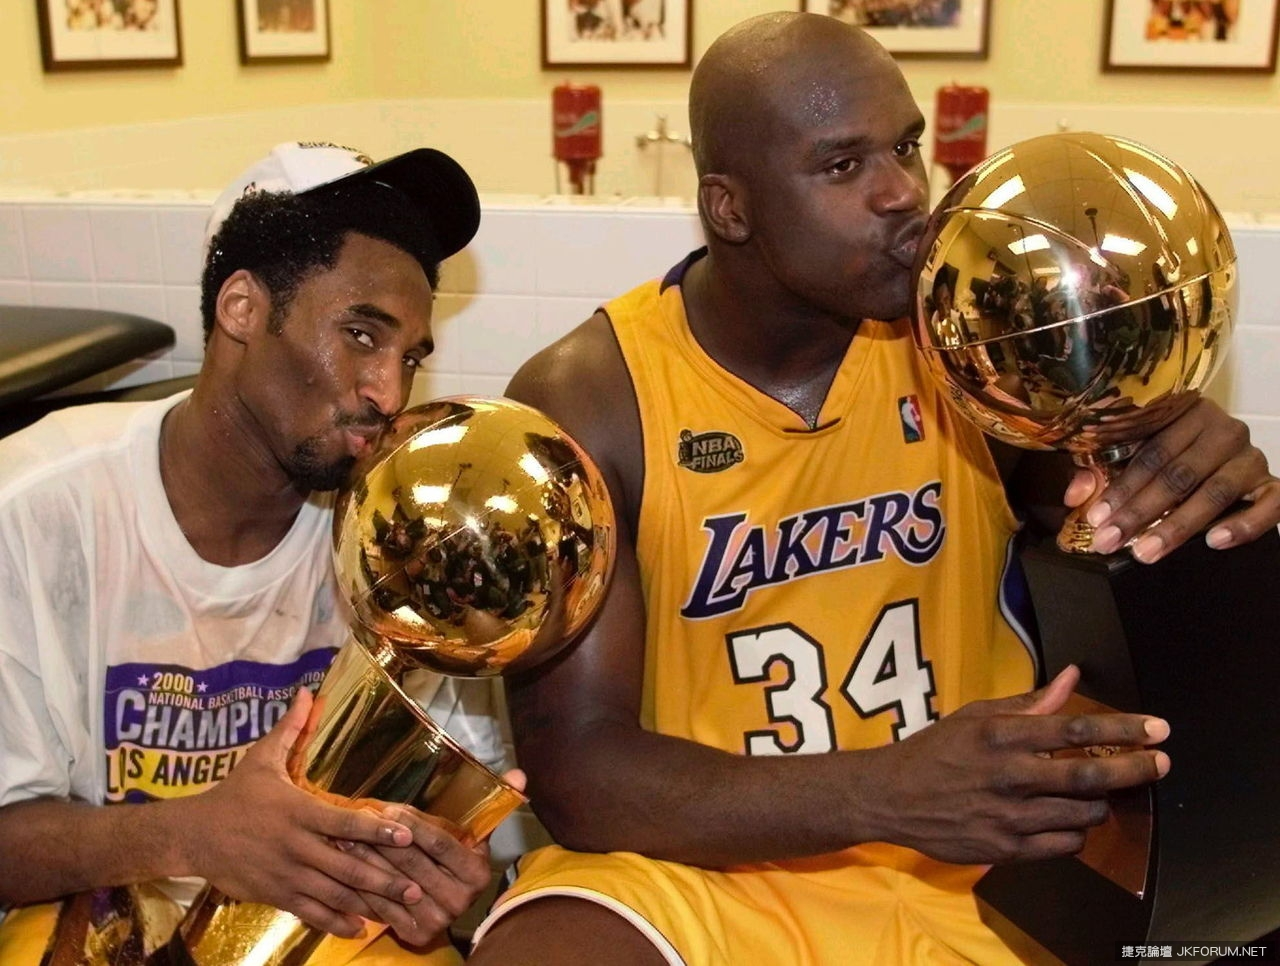 cropped_1._Kobe_and_Shaq_celebrate_their_first_NBA_title_in_the_locker_room_afte.jpg